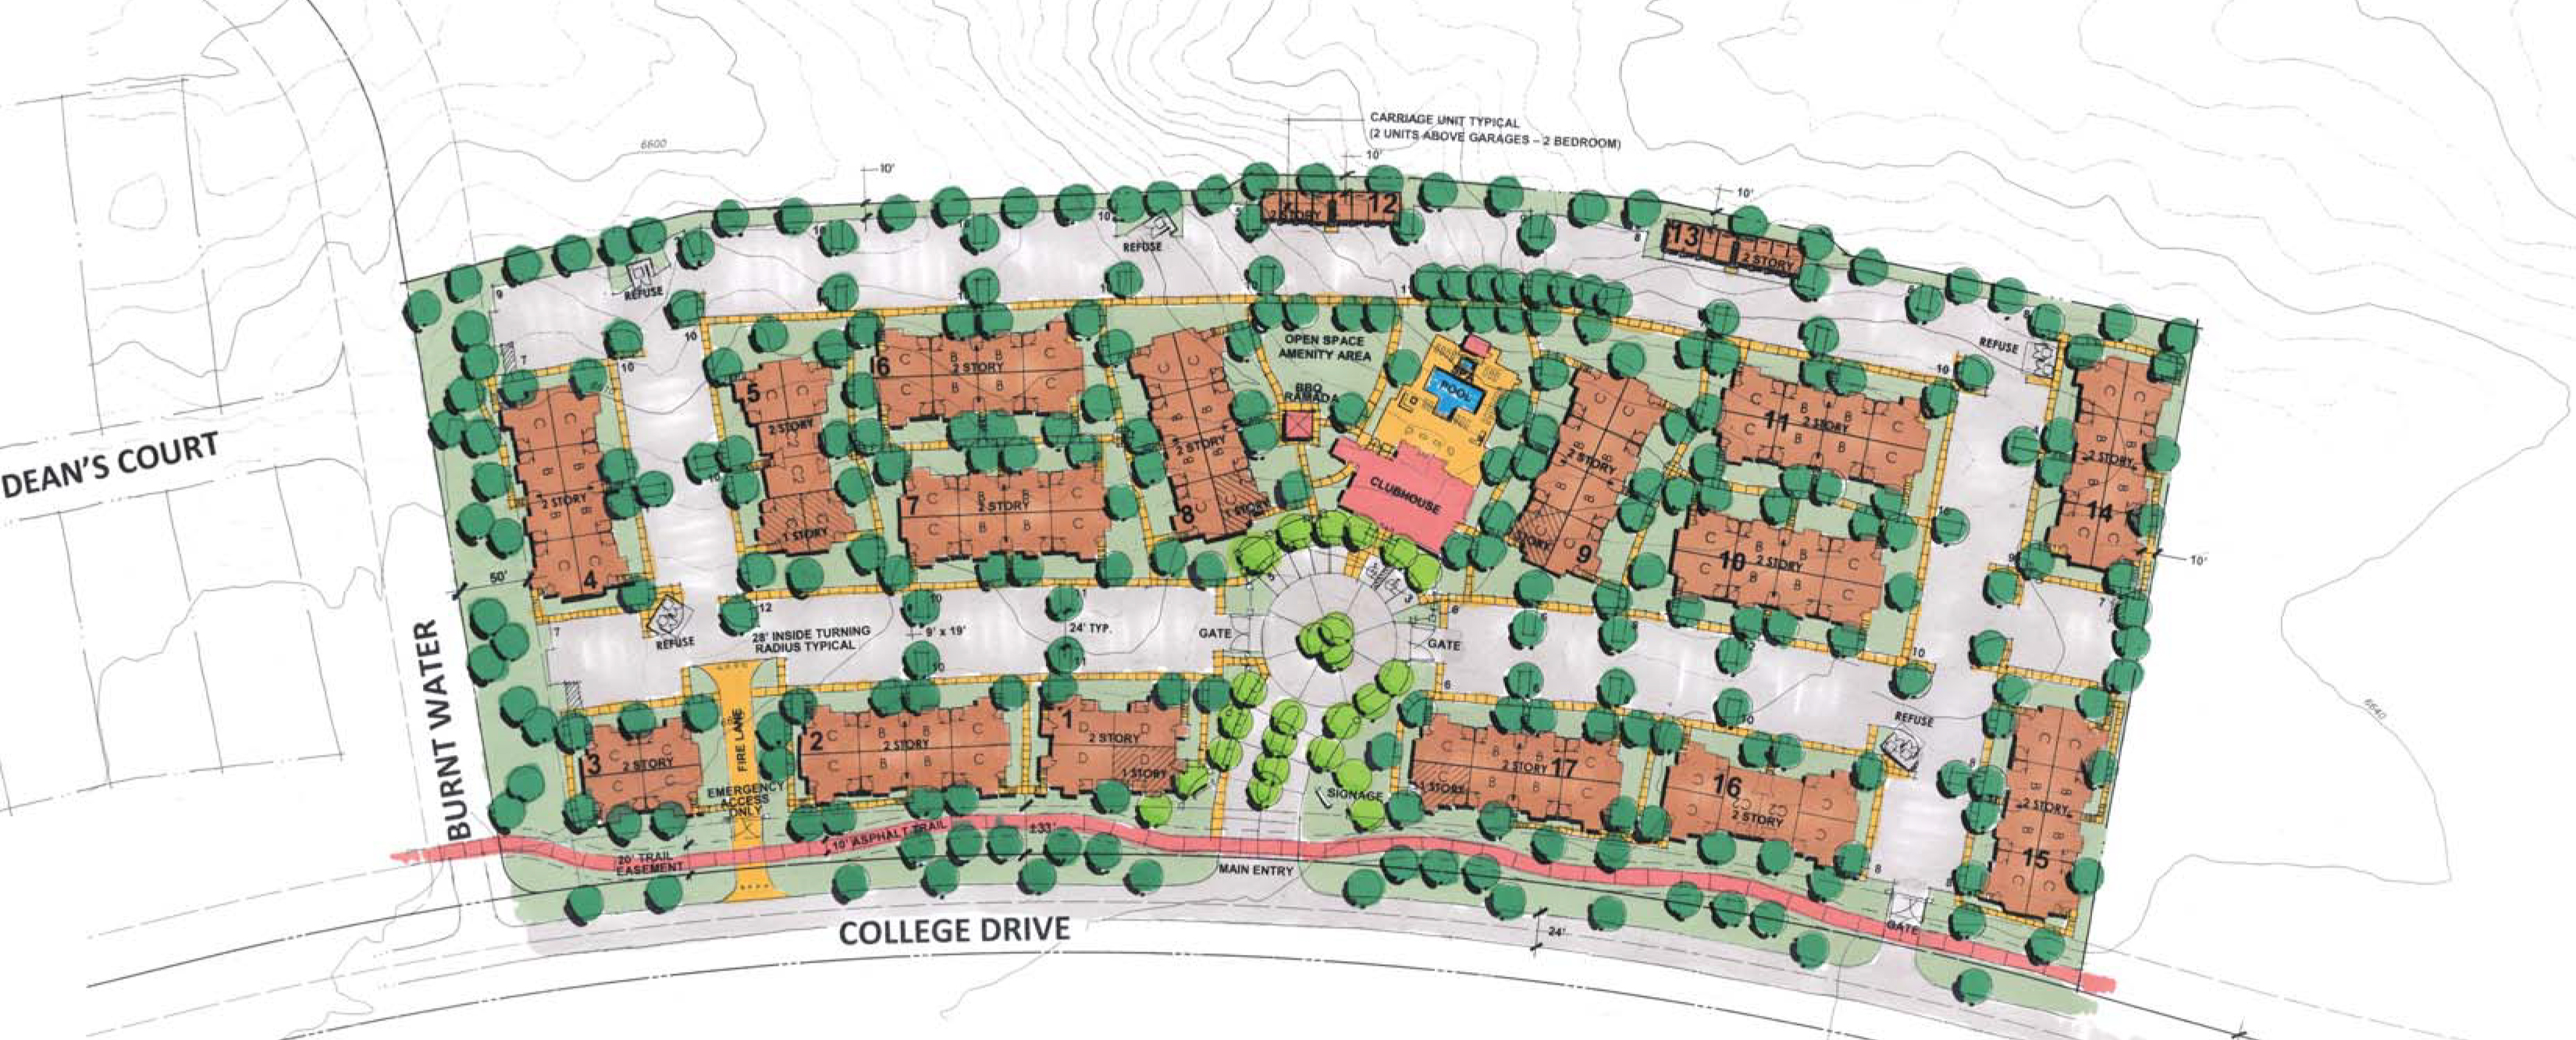 Color Conceptual Site Plan 11.20.12.pdf